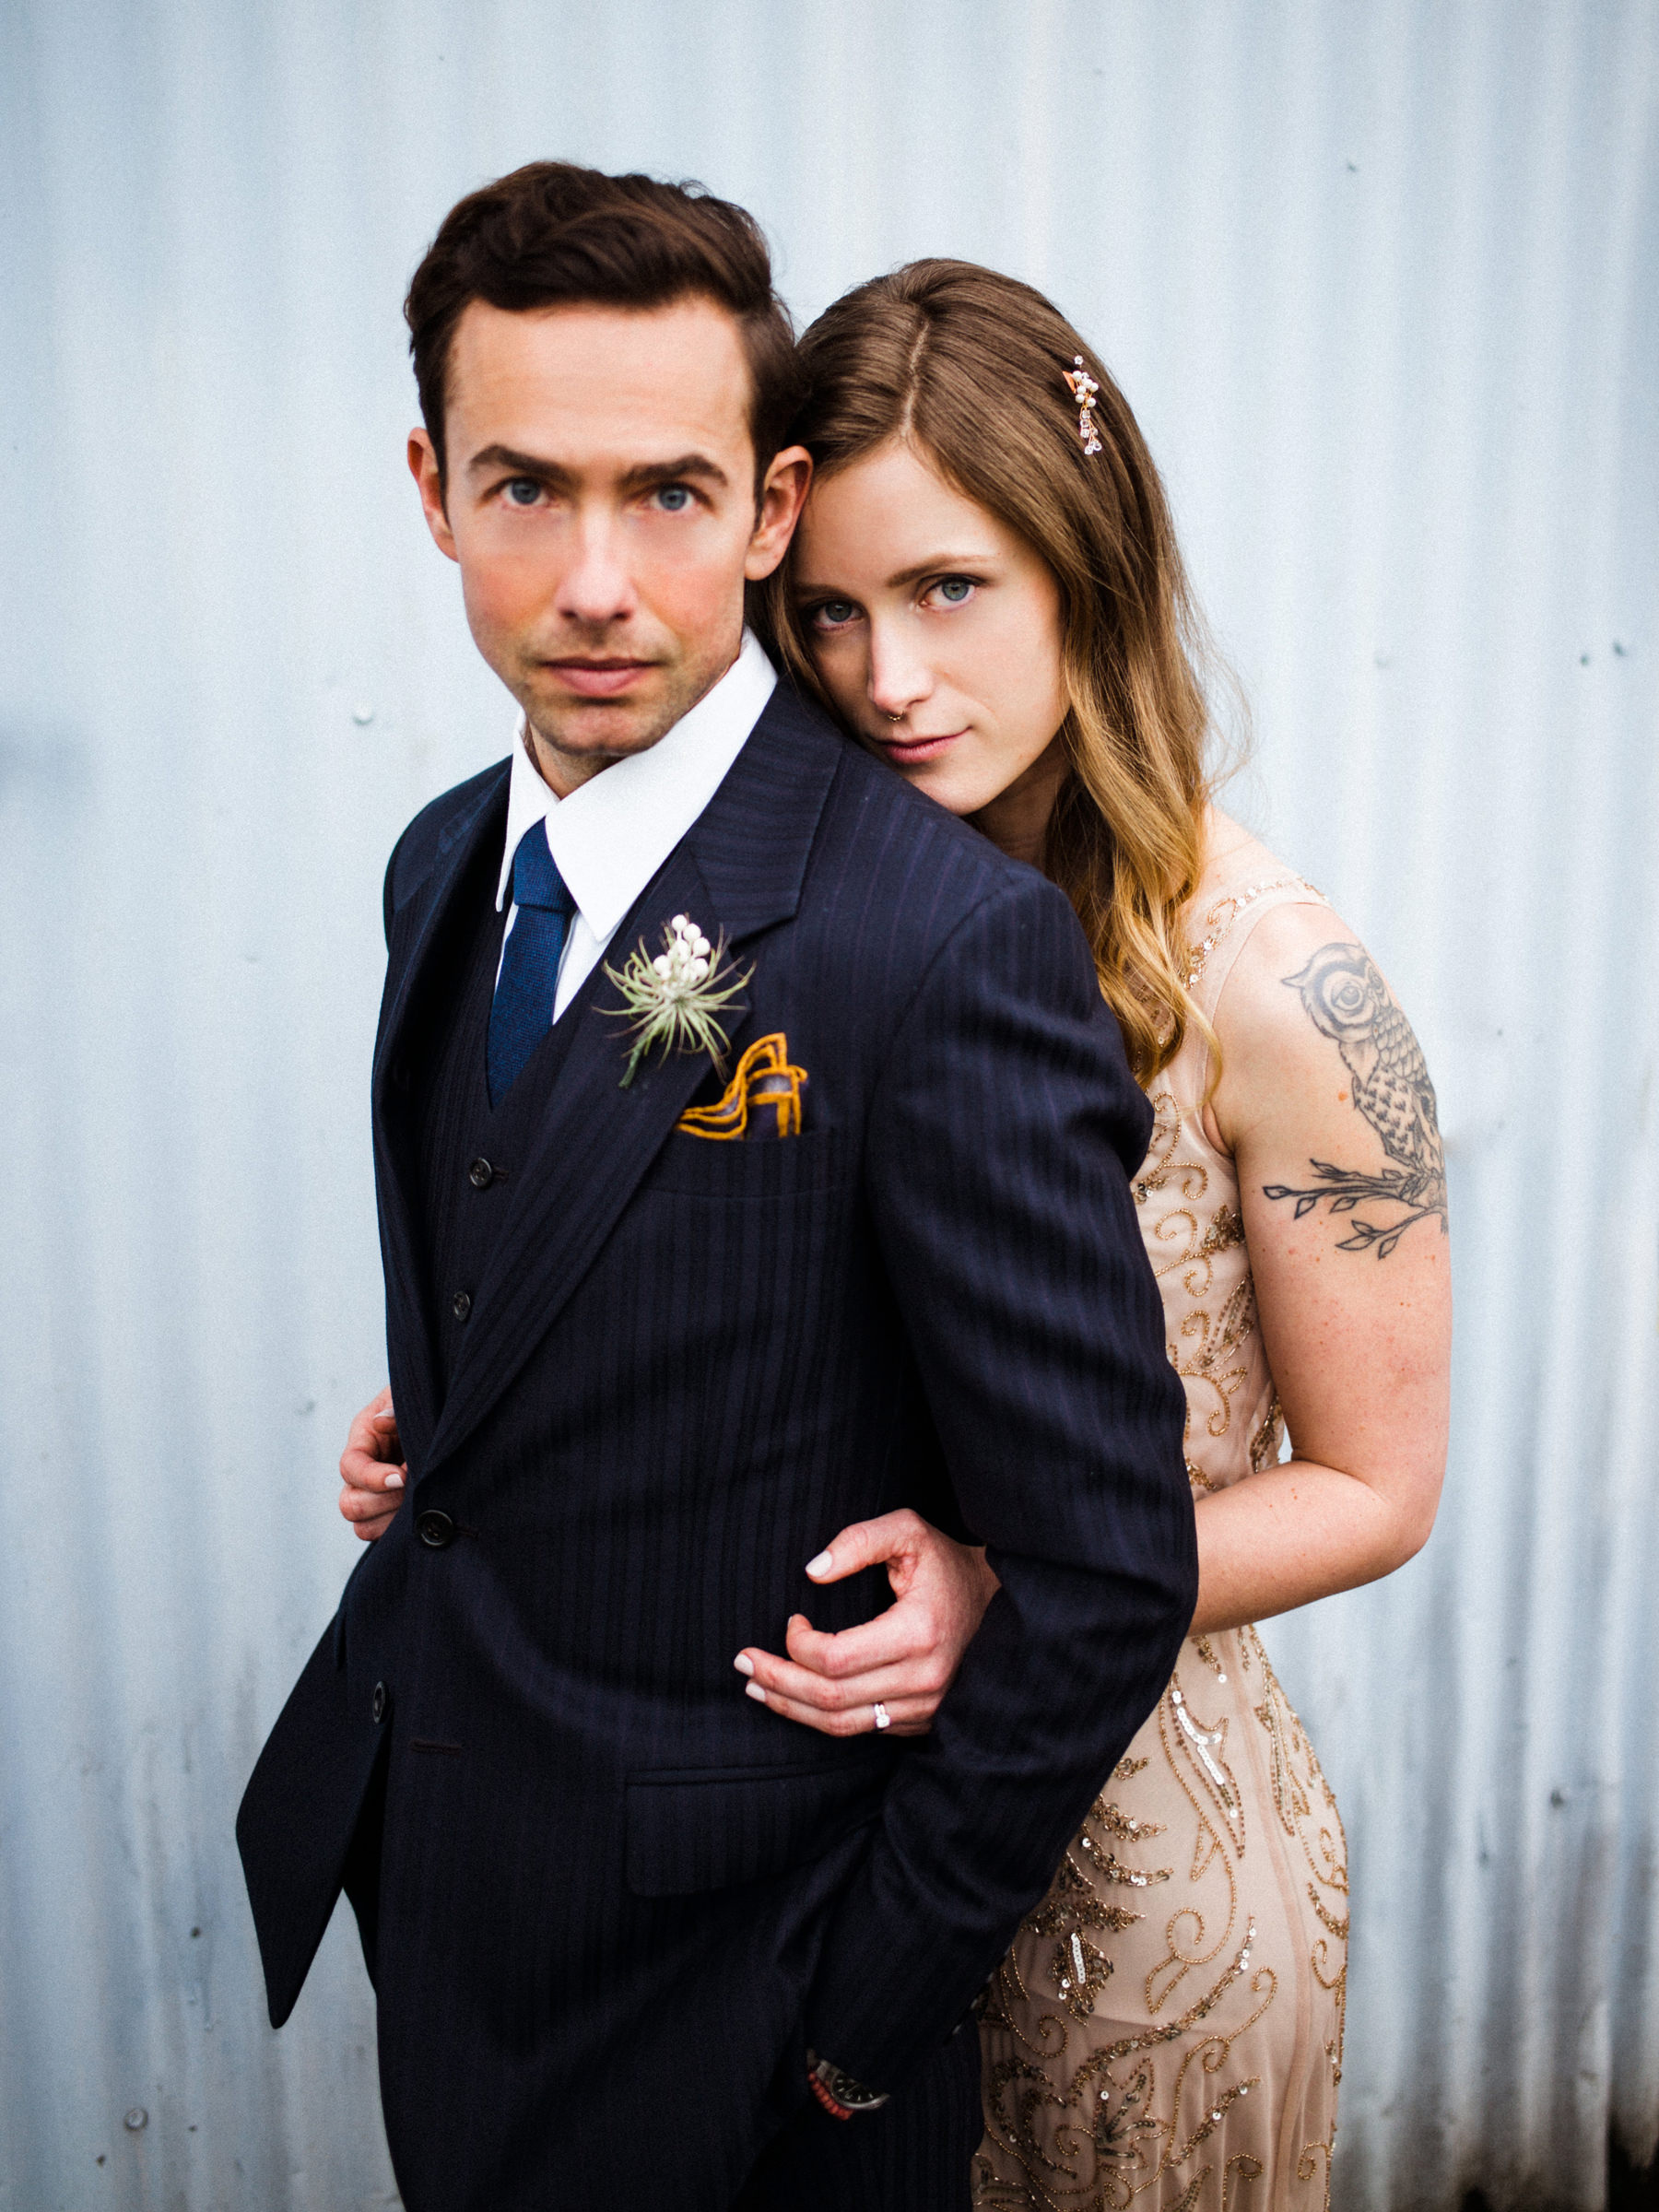 050-urban-wedding-portraits-by-film-photographer-ryan-flynn-in-industrial-area.jpg